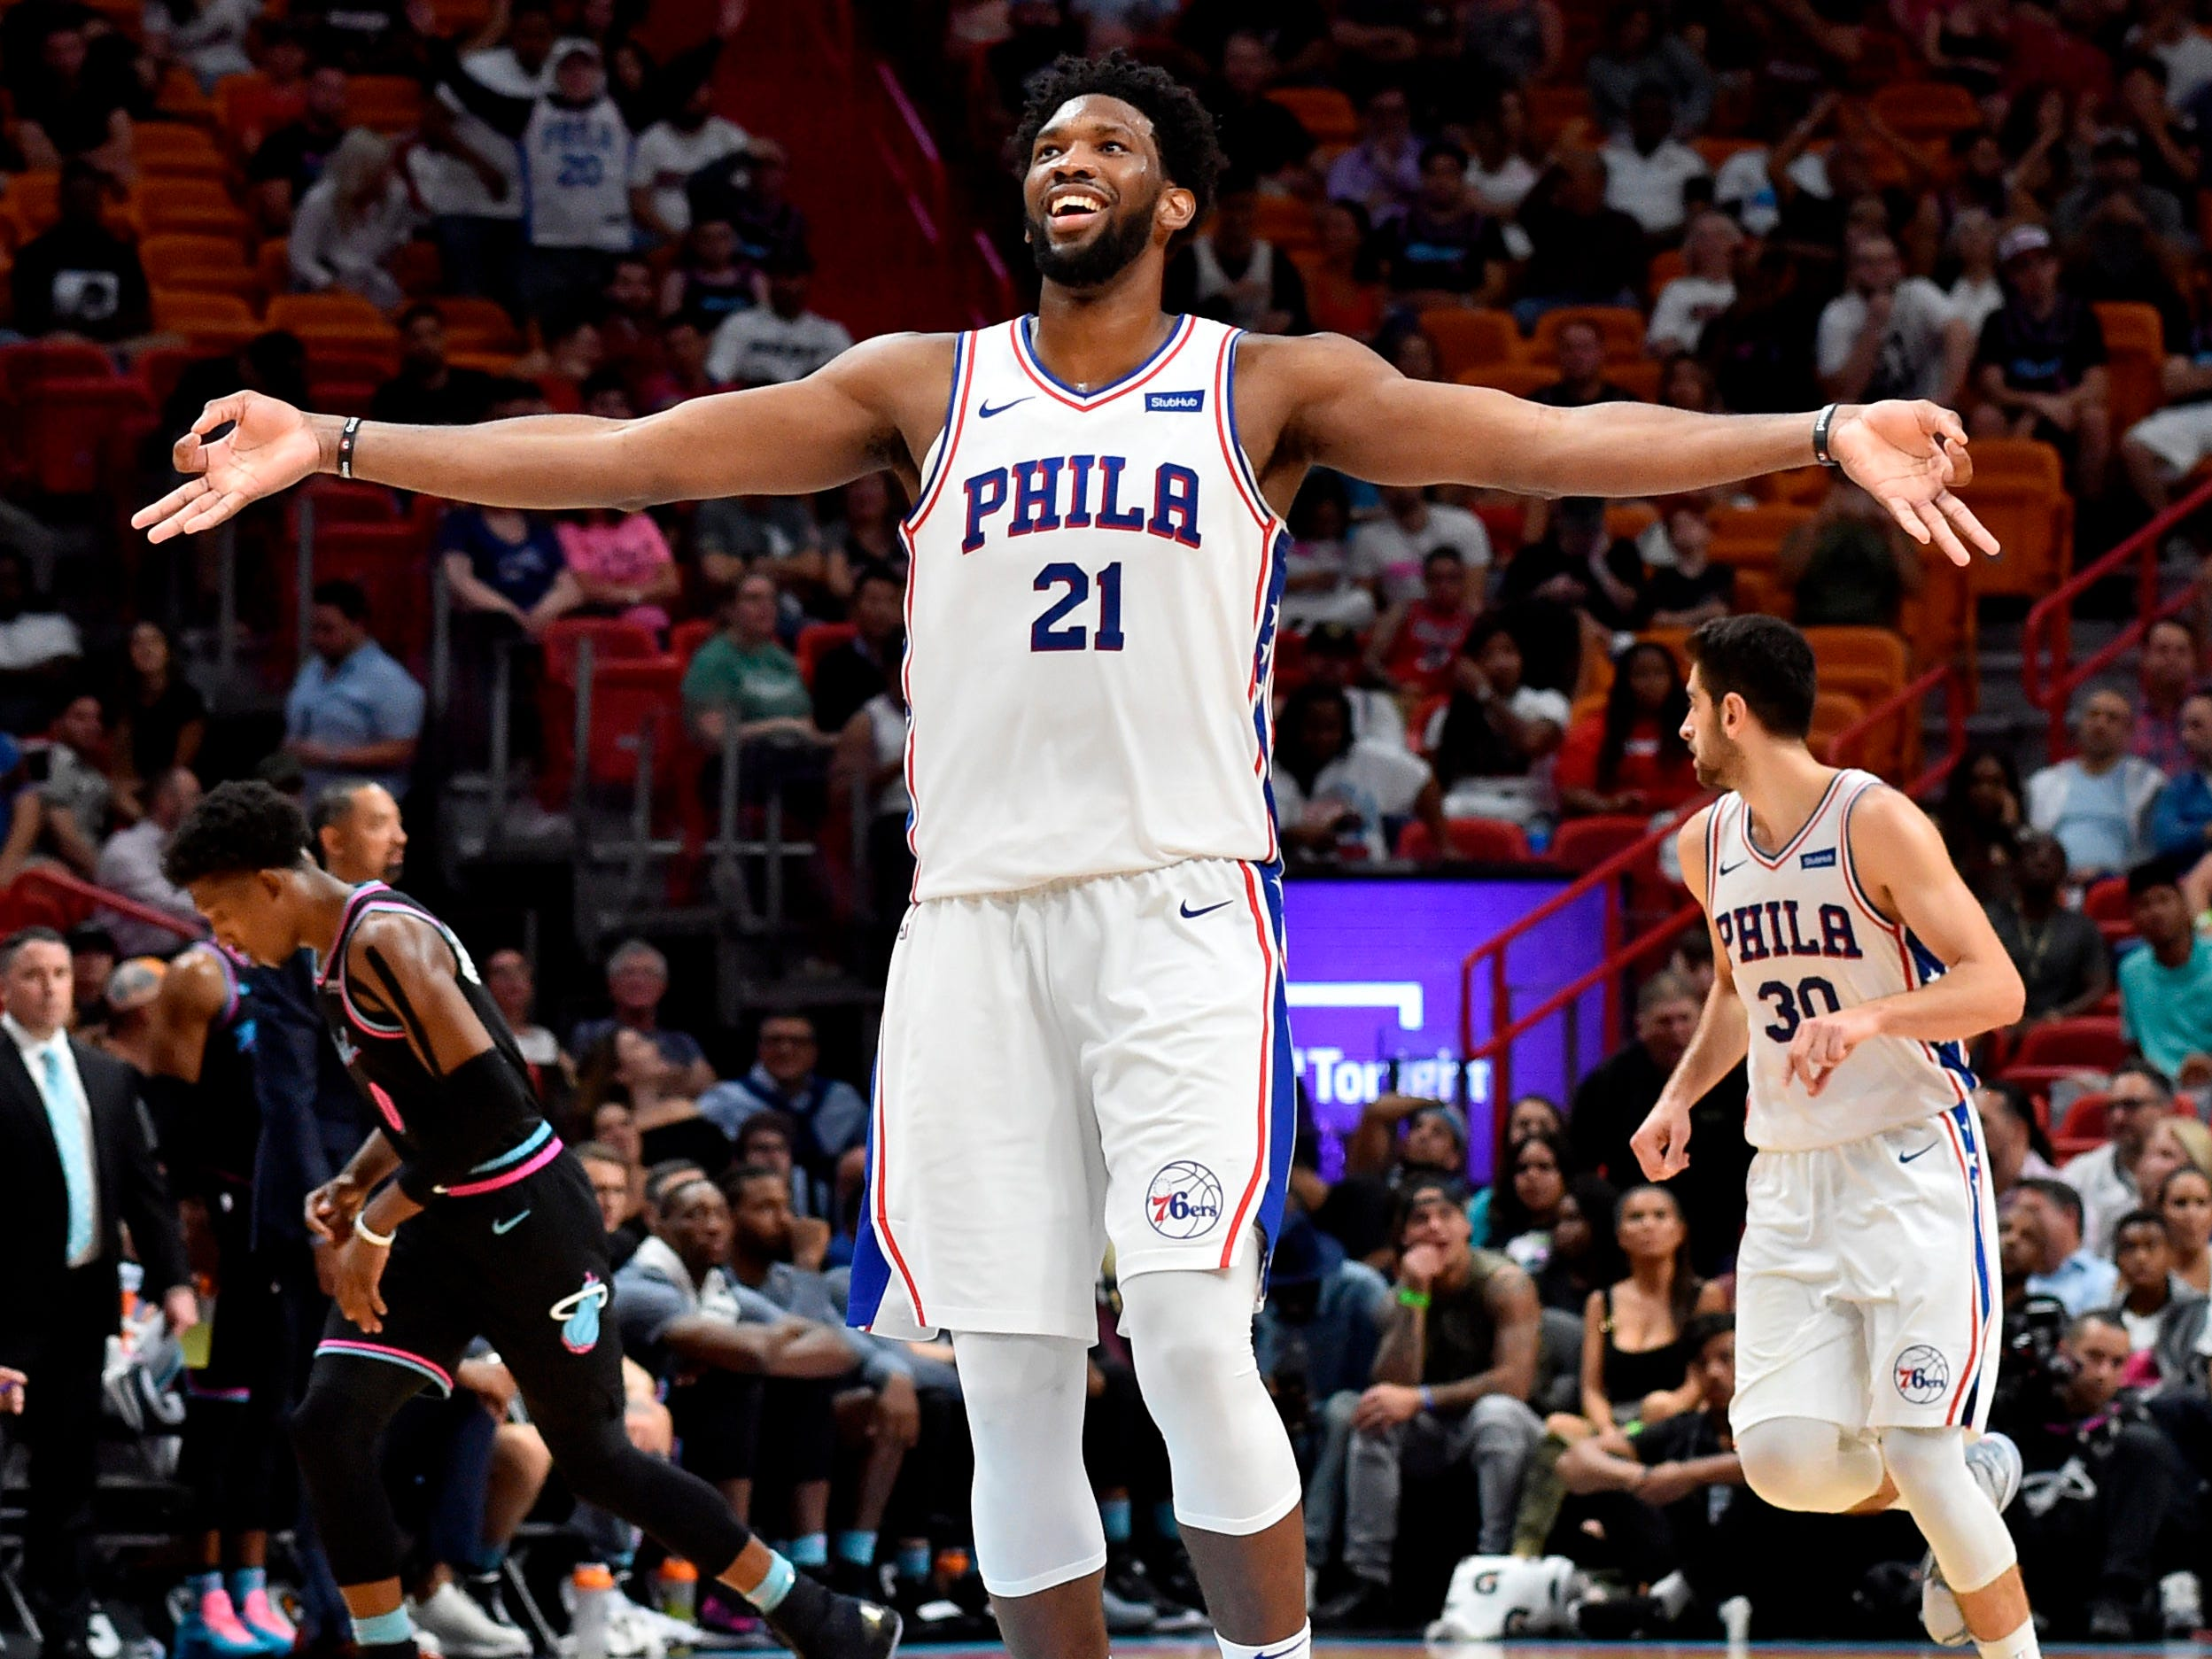 Nov. 12: 76ers center Joel Embiid celebrates after hitting a 3-pointer during the second half against the Heat in Miami.